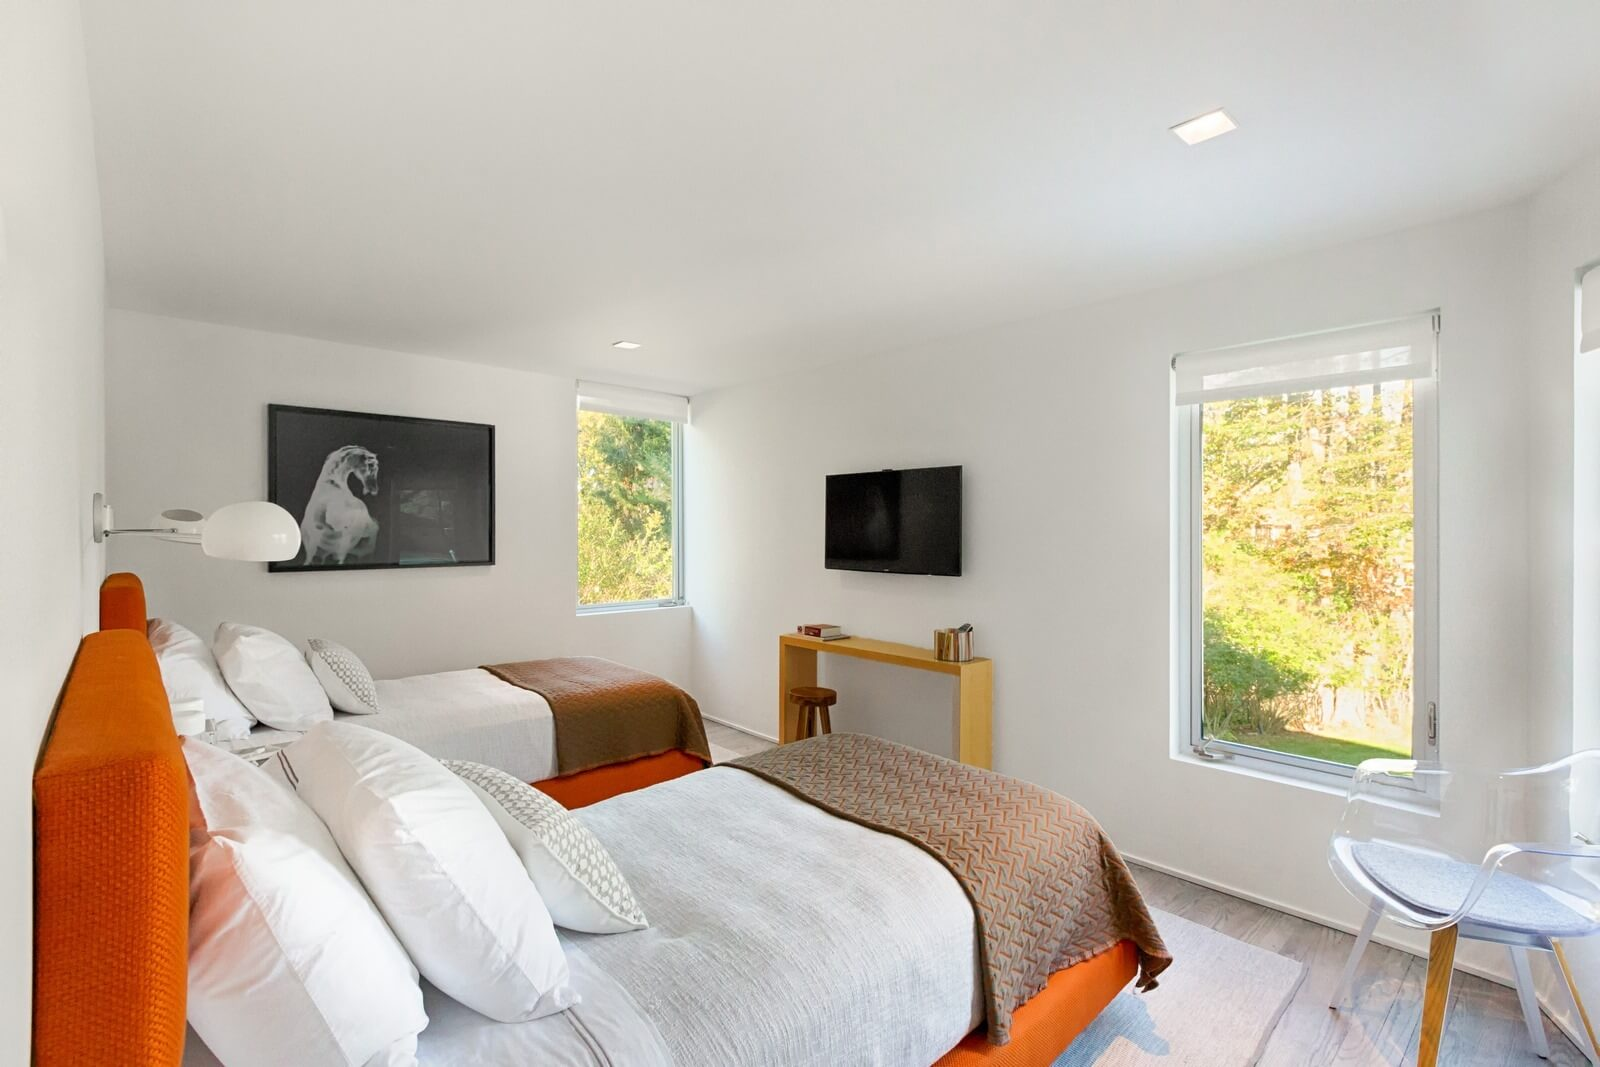 This comfortable bedroom is decorated in white colors that add warmth, tenderness, cleanliness and peace to the whole interior. Note the orange color of the beds and some black paintings on the walls that act as impressive decorative elements. Colorful furniture pieces and decorative elements create a lively atmosphere, bringing an optimistic and cheerful mood to the owners of the bedroom. Try one of the best Grandeur Hills Group interior design service and appreciate the high quality of the work of our interior designers!